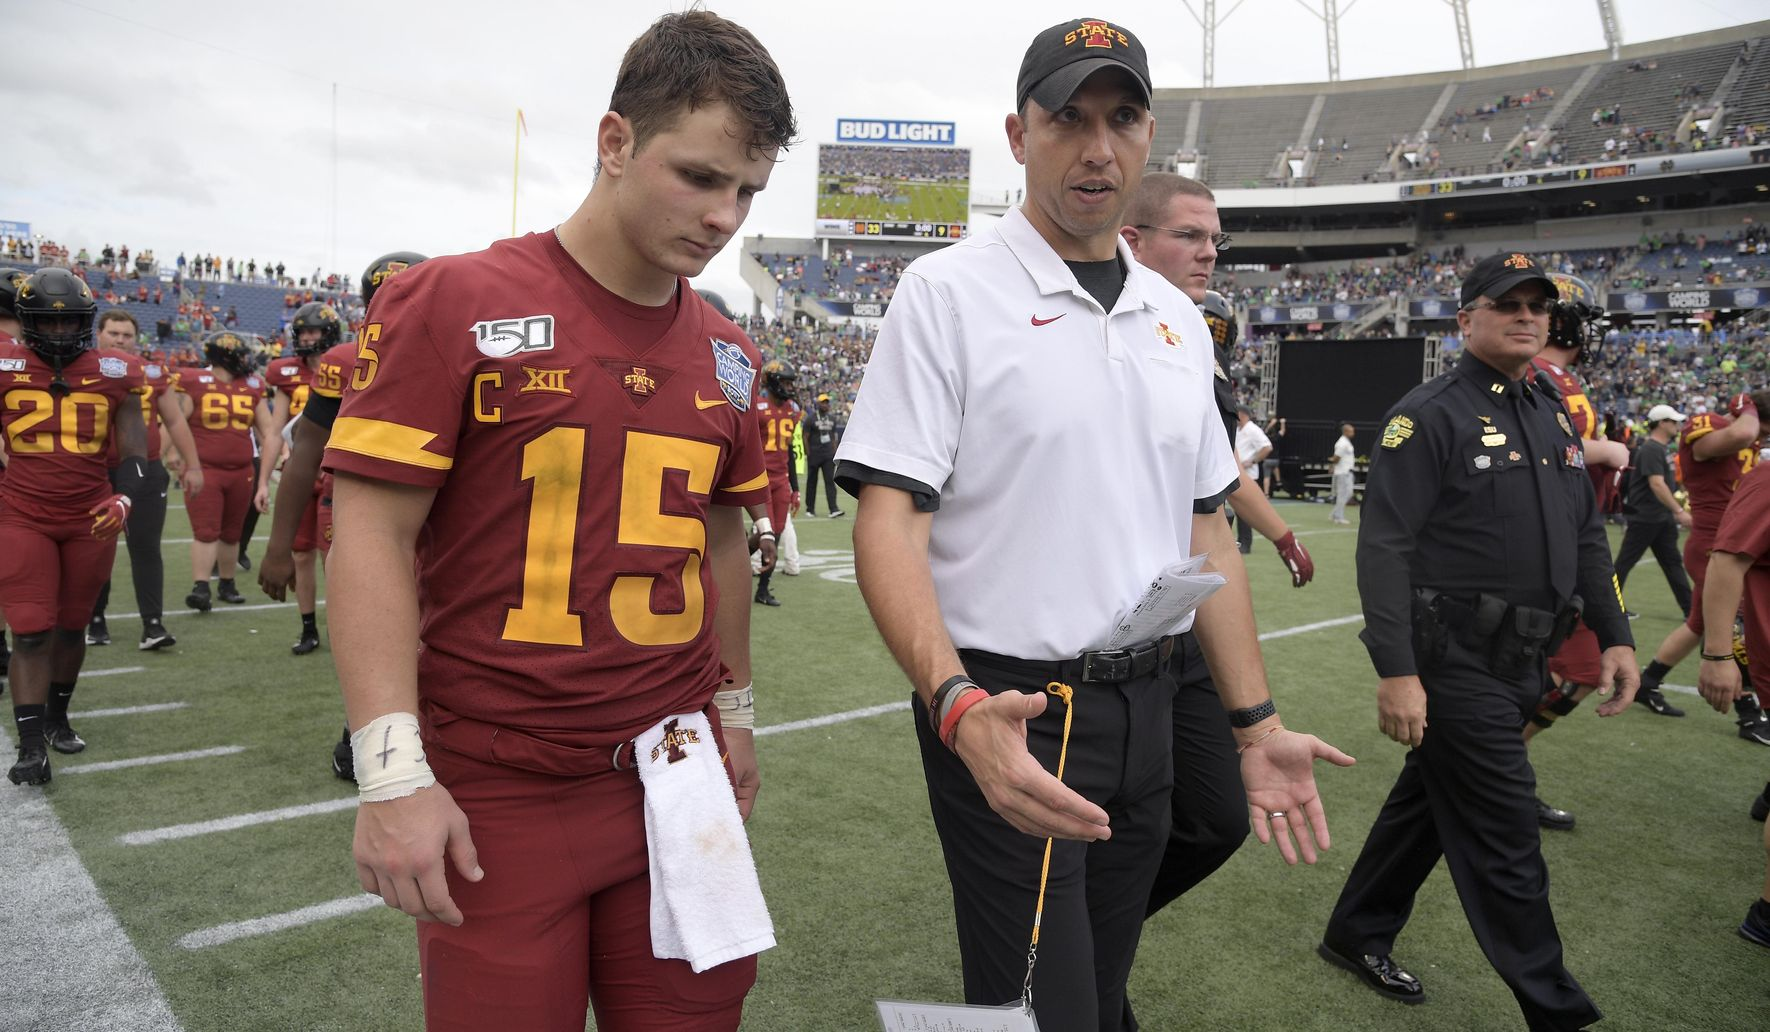 Iowa_state_preview_football_20307_c0-233-5568-3479_s1770x1032